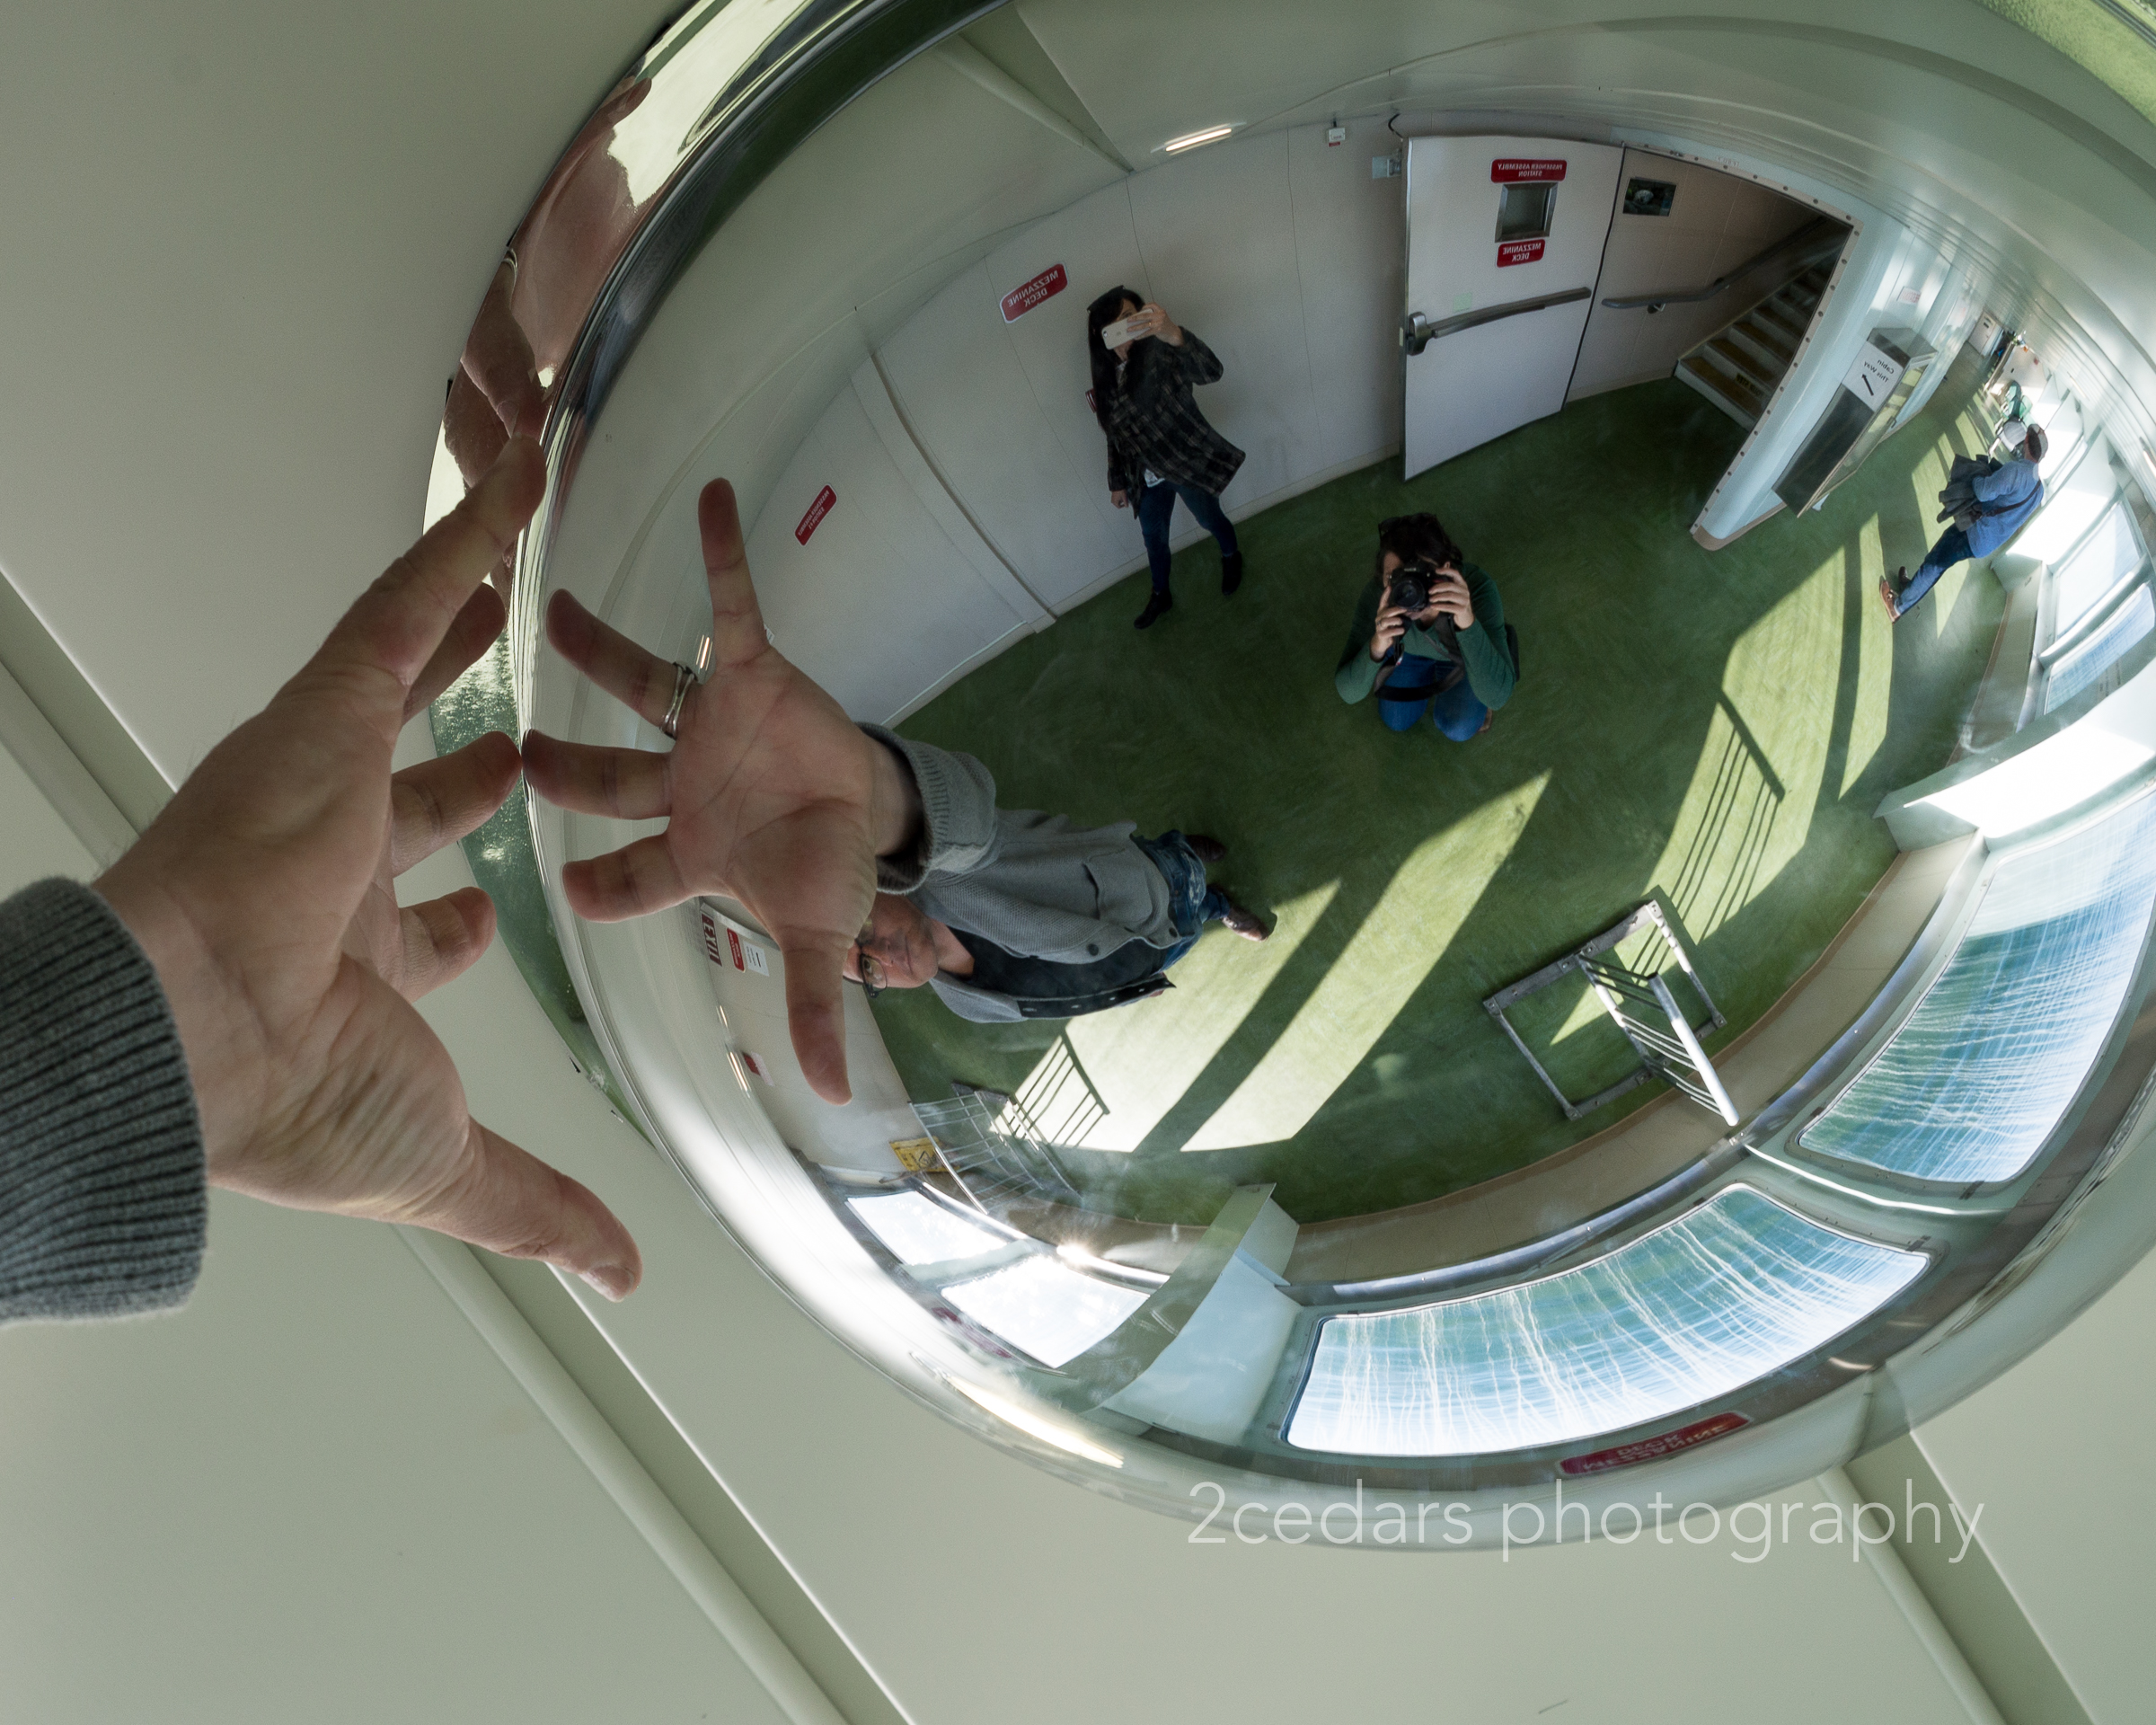 Reflection of photographer and hand in a mirrored ball on Vashon Ferry